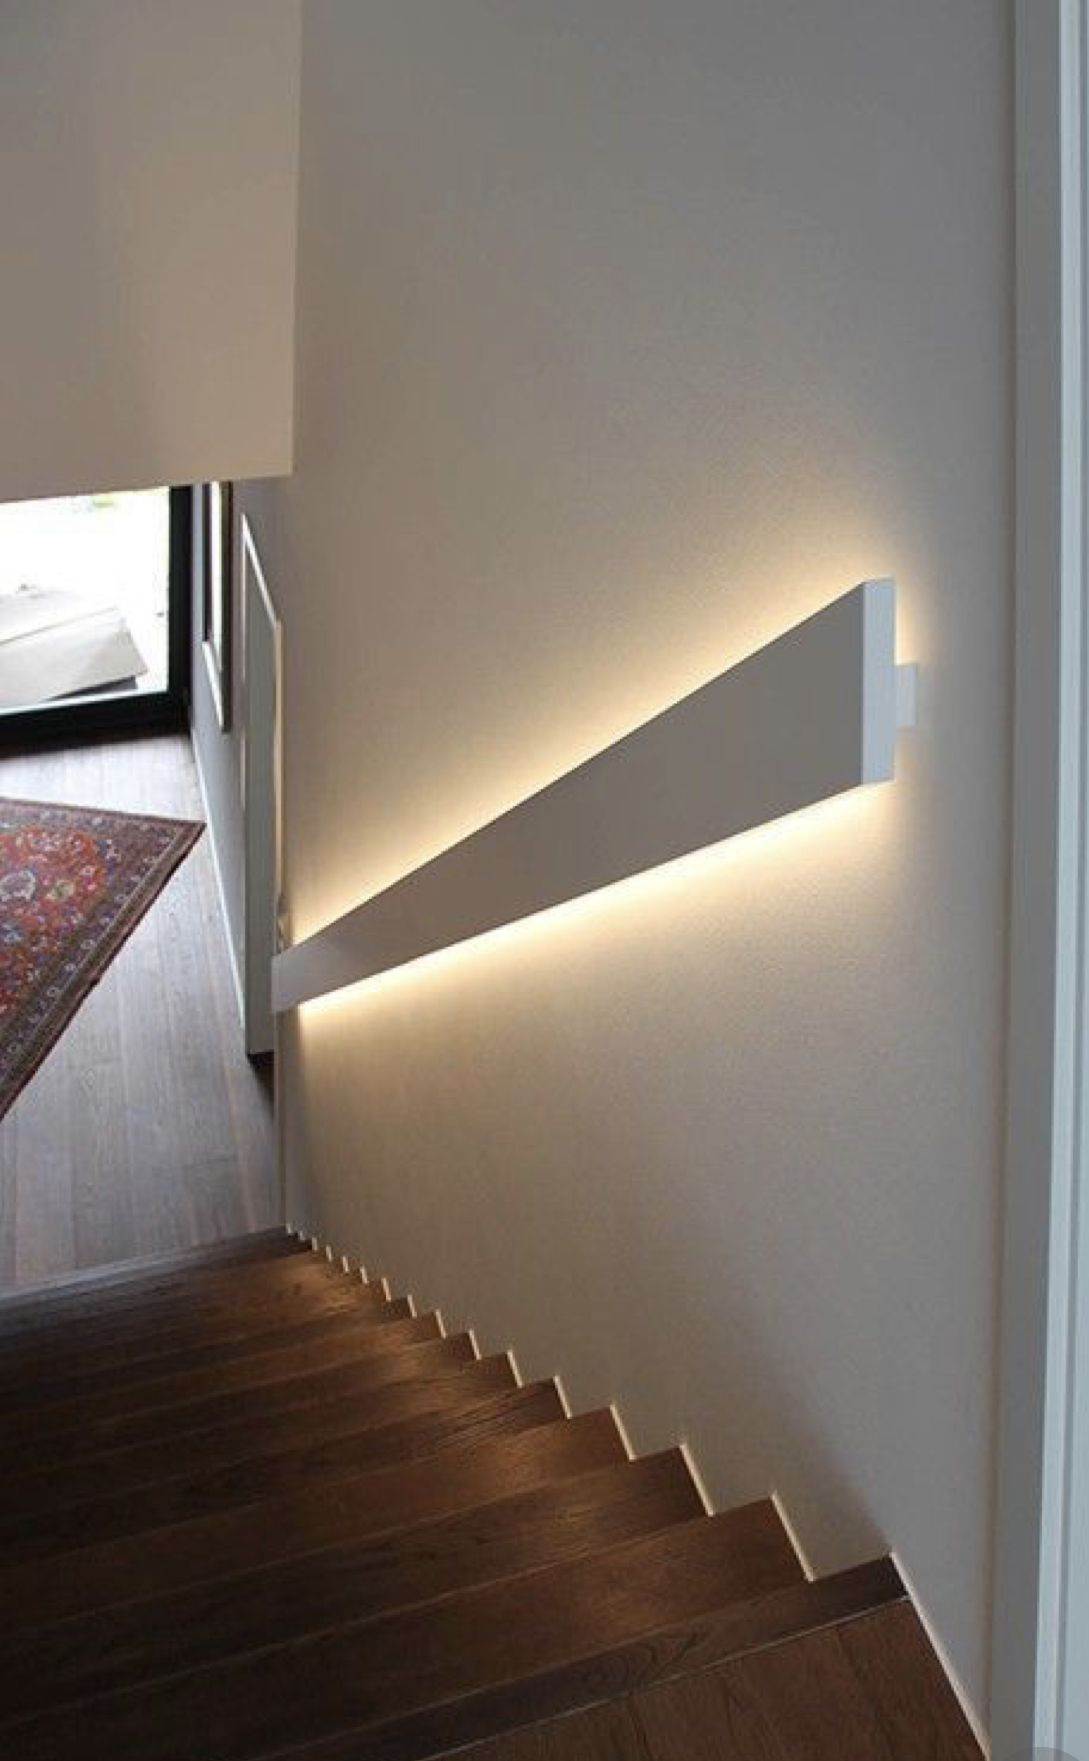 20 Easy To Copy Stairwell Lighting Railings And Branding Decor Ideas Home Decor Accessories Home Decor Decor Home Decor Accessories